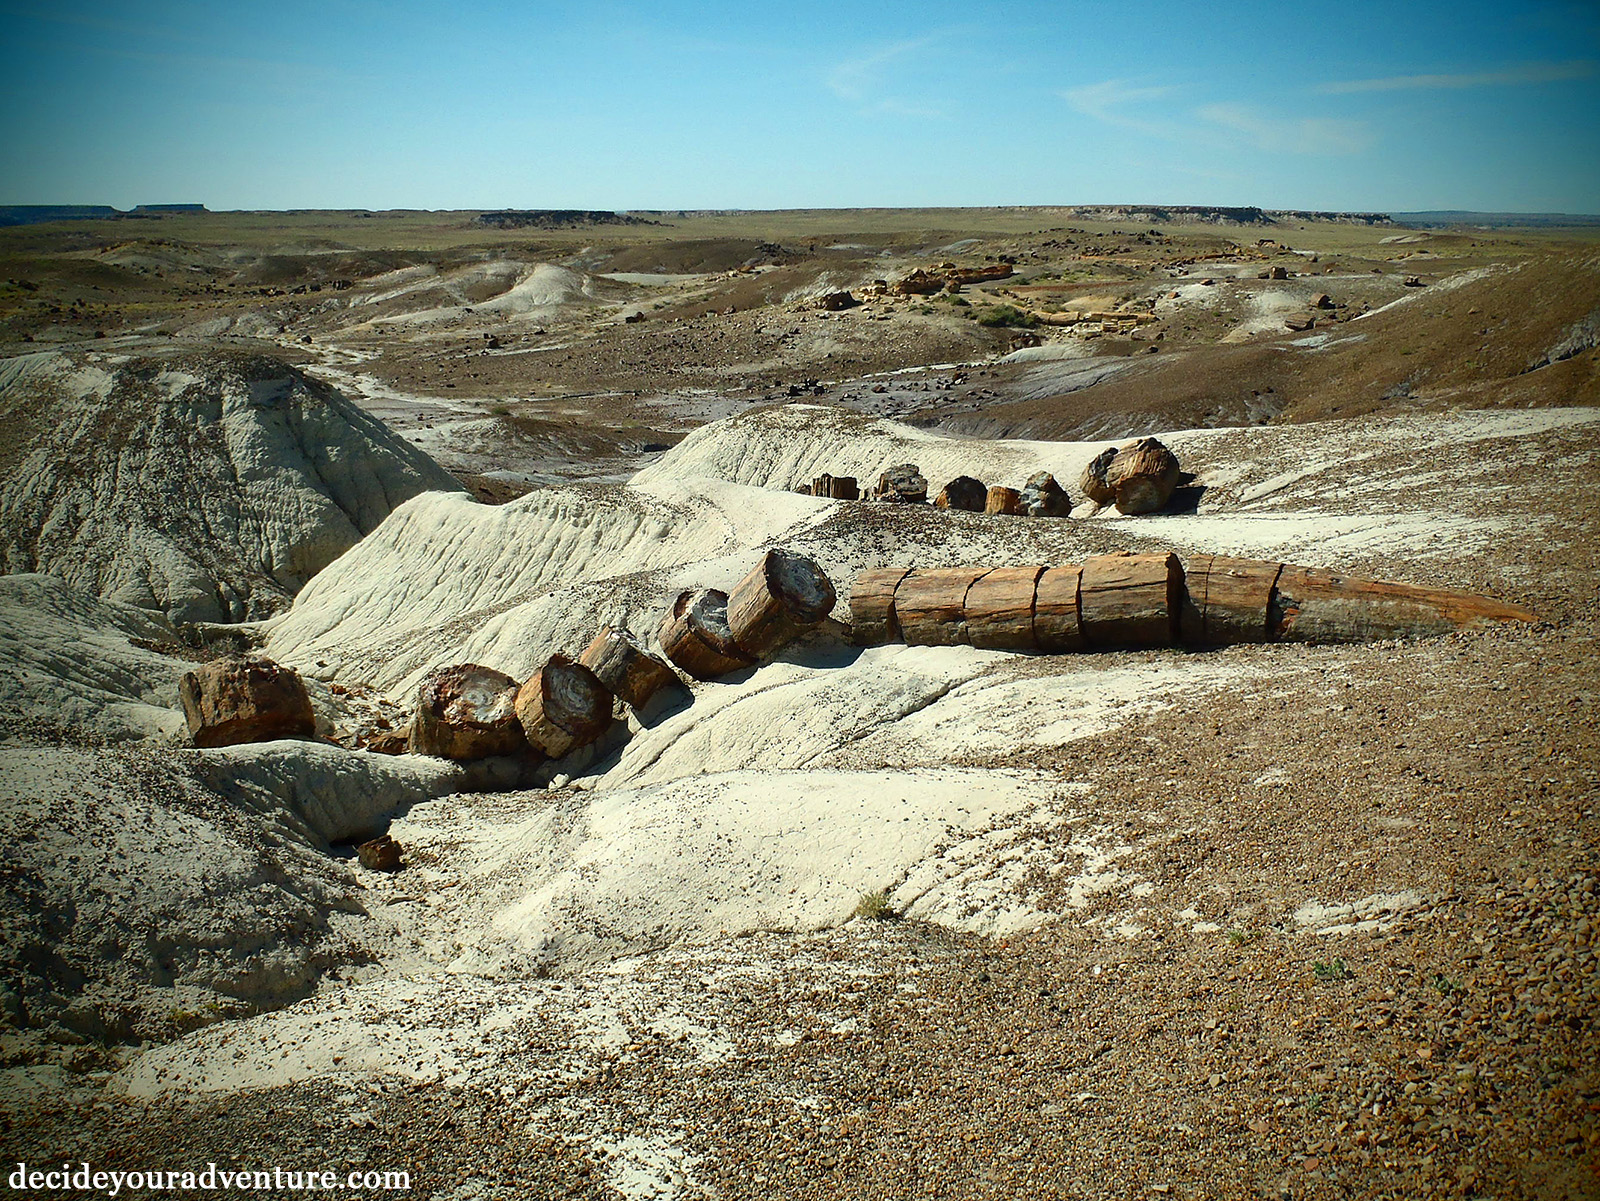 petrified forest natl pk milfs dating site Petrified forest natl pk's best 100% free online dating site meet loads of available single women in petrified forest natl pk with mingle2's petrified forest natl pk dating.